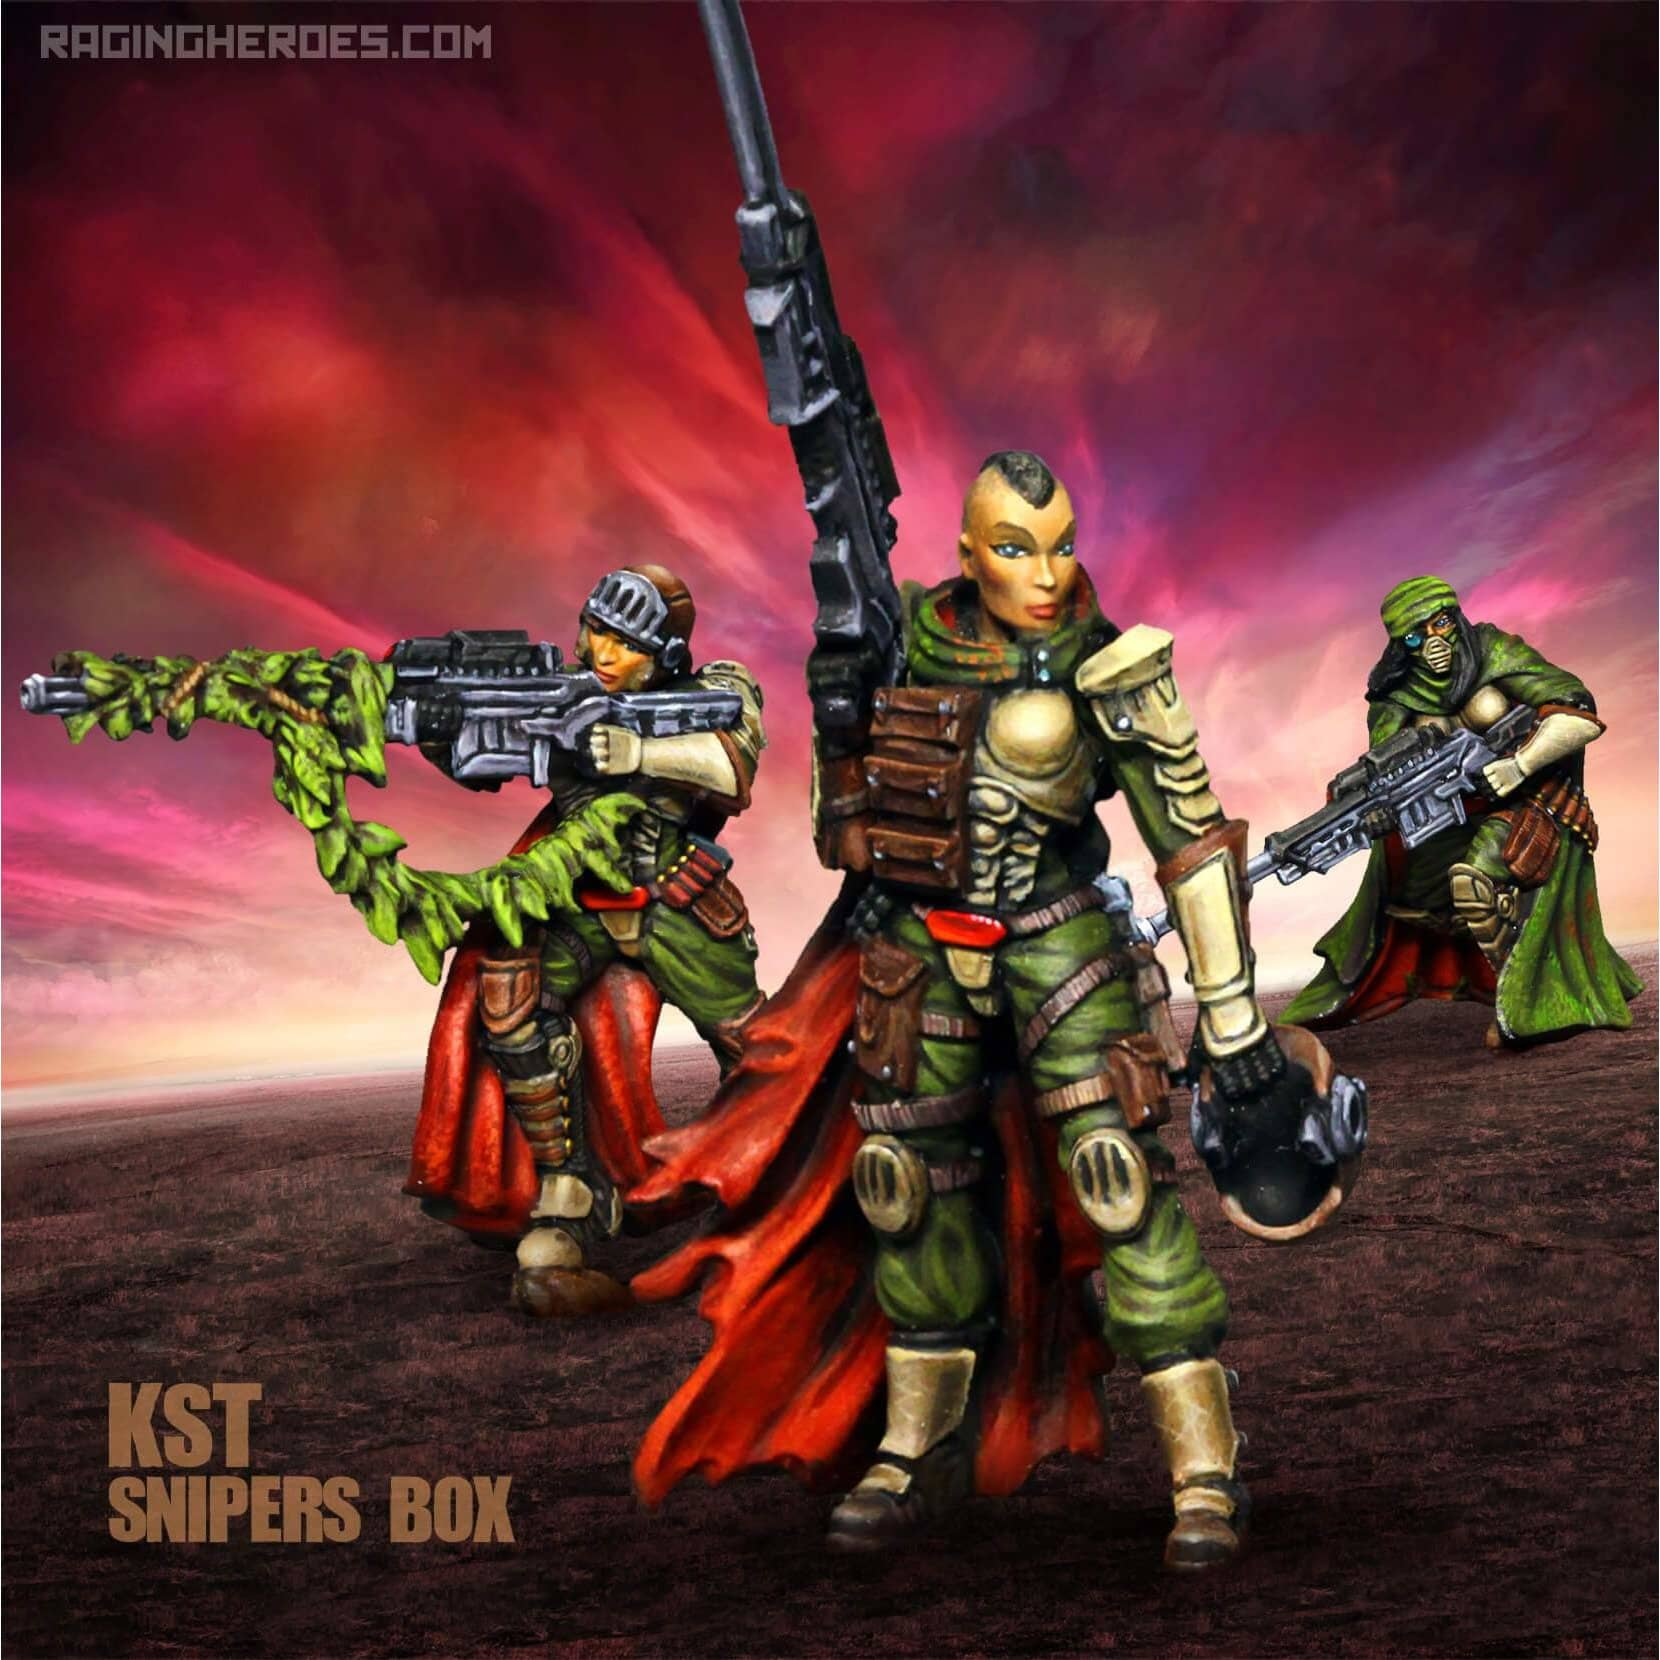 KST Sniper Unit - Raging Heroes